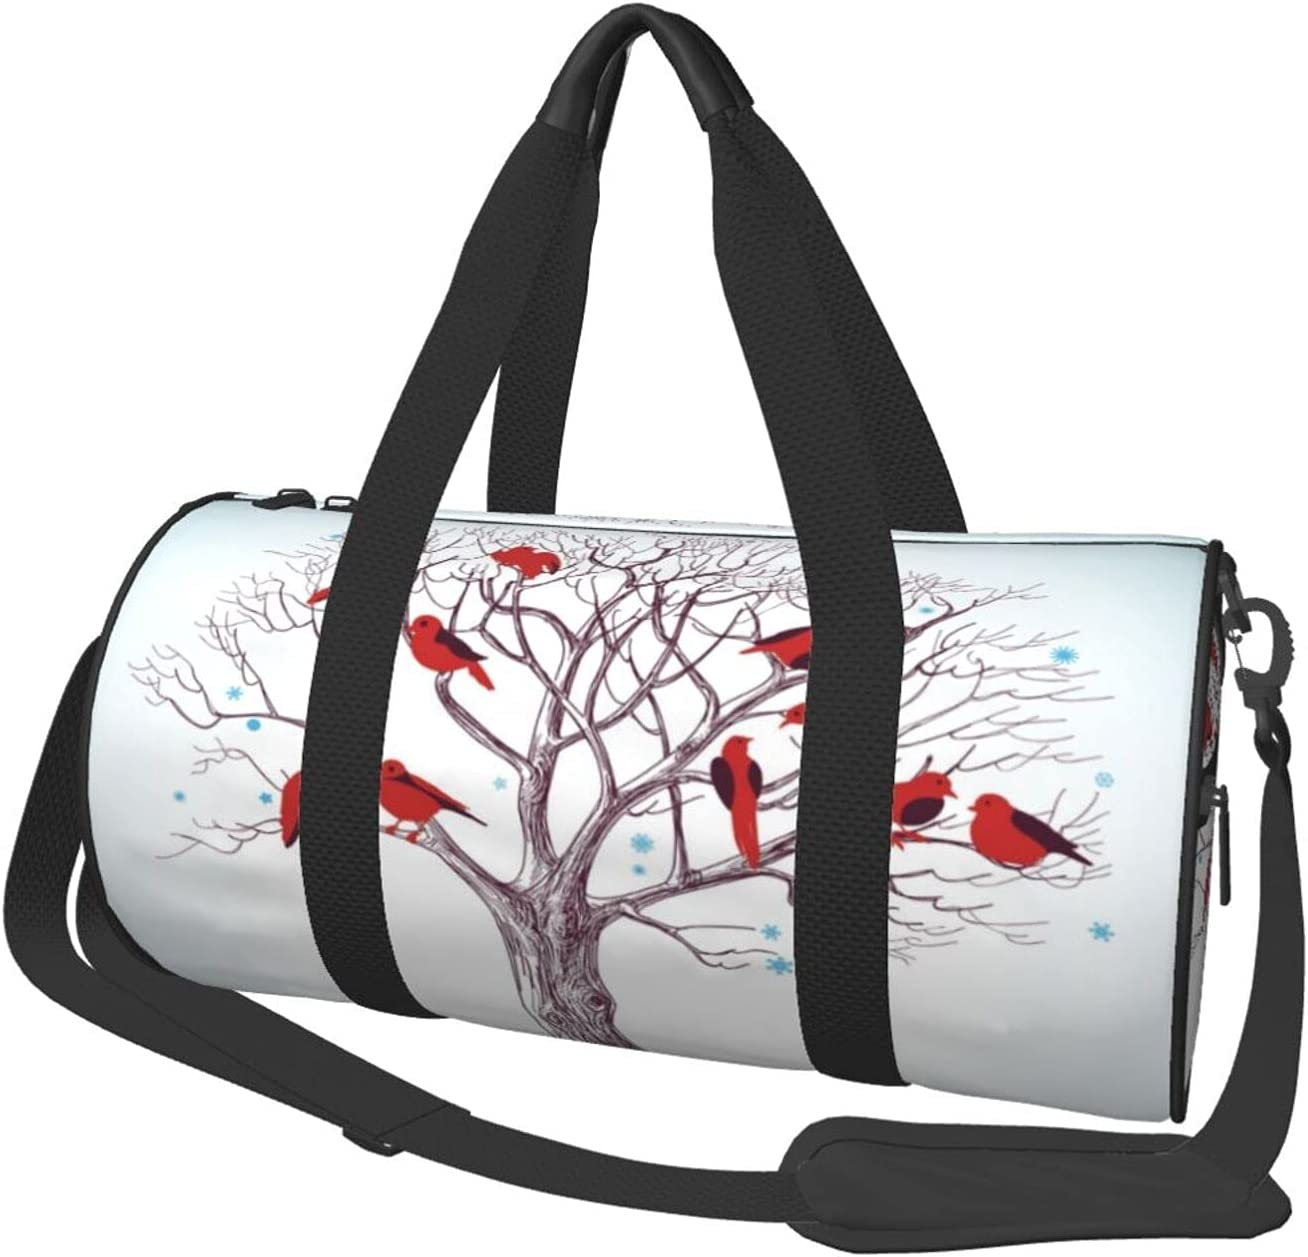 Luckytagy Birds Tree Personalized Denver Mall Duffel Women Bag Limited Special Price Fitness Men S